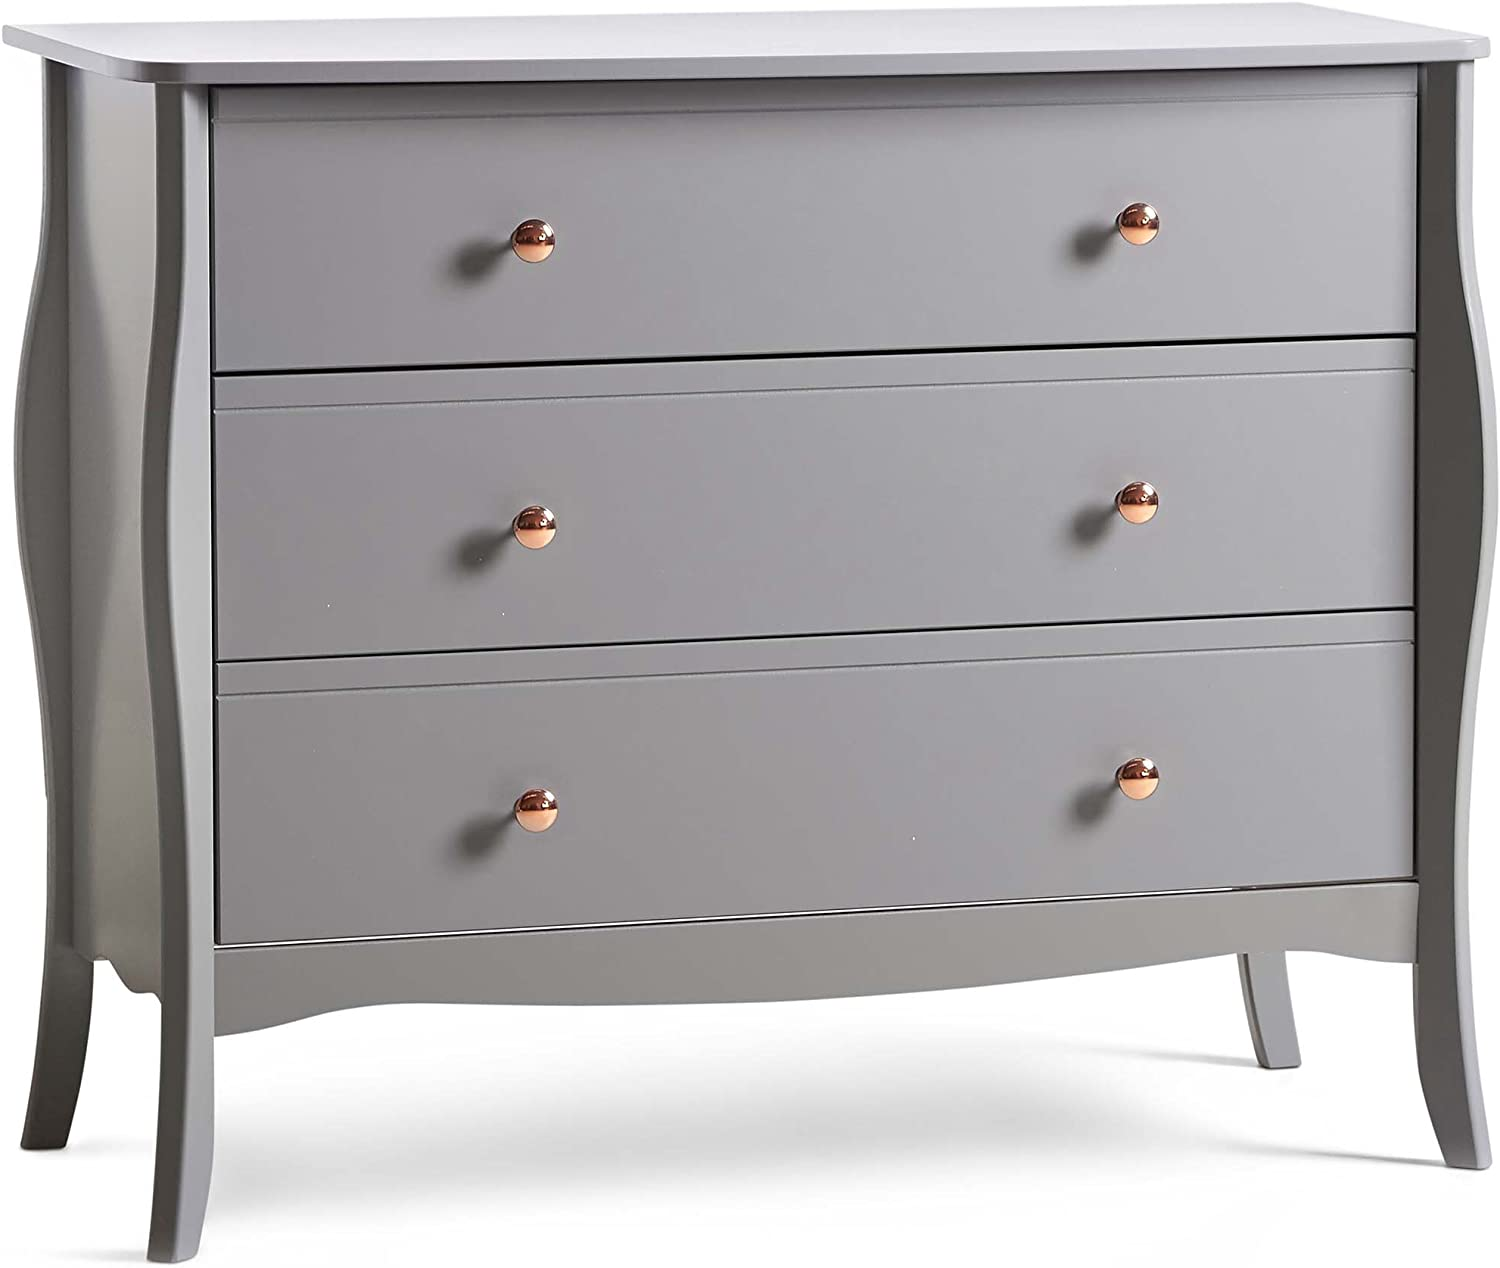 Beautify Grey Chest Of Drawers 3 Drawer Chest Bedroom Furniture Rose Gold Handles Amazon Co Uk Kitchen Home